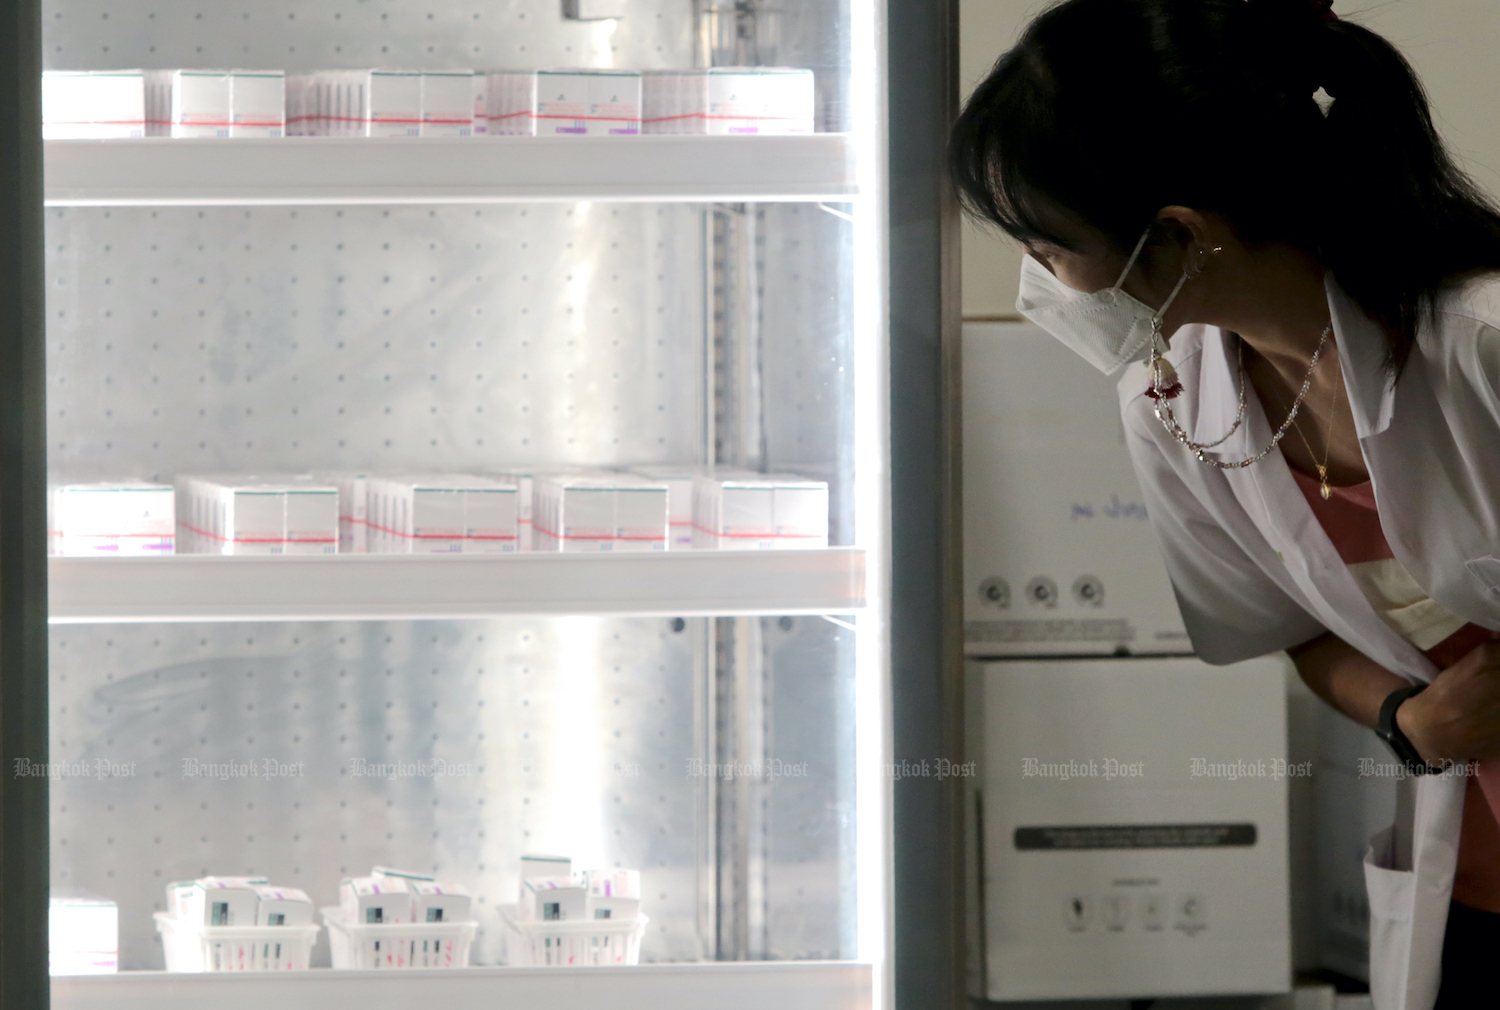 A medical worker checks on vaccine kept in a refrigerator for use at a vaccination centre in Central Chaeng Wattana shopping centre in Nonthaburi. (Chanat Katanyu)